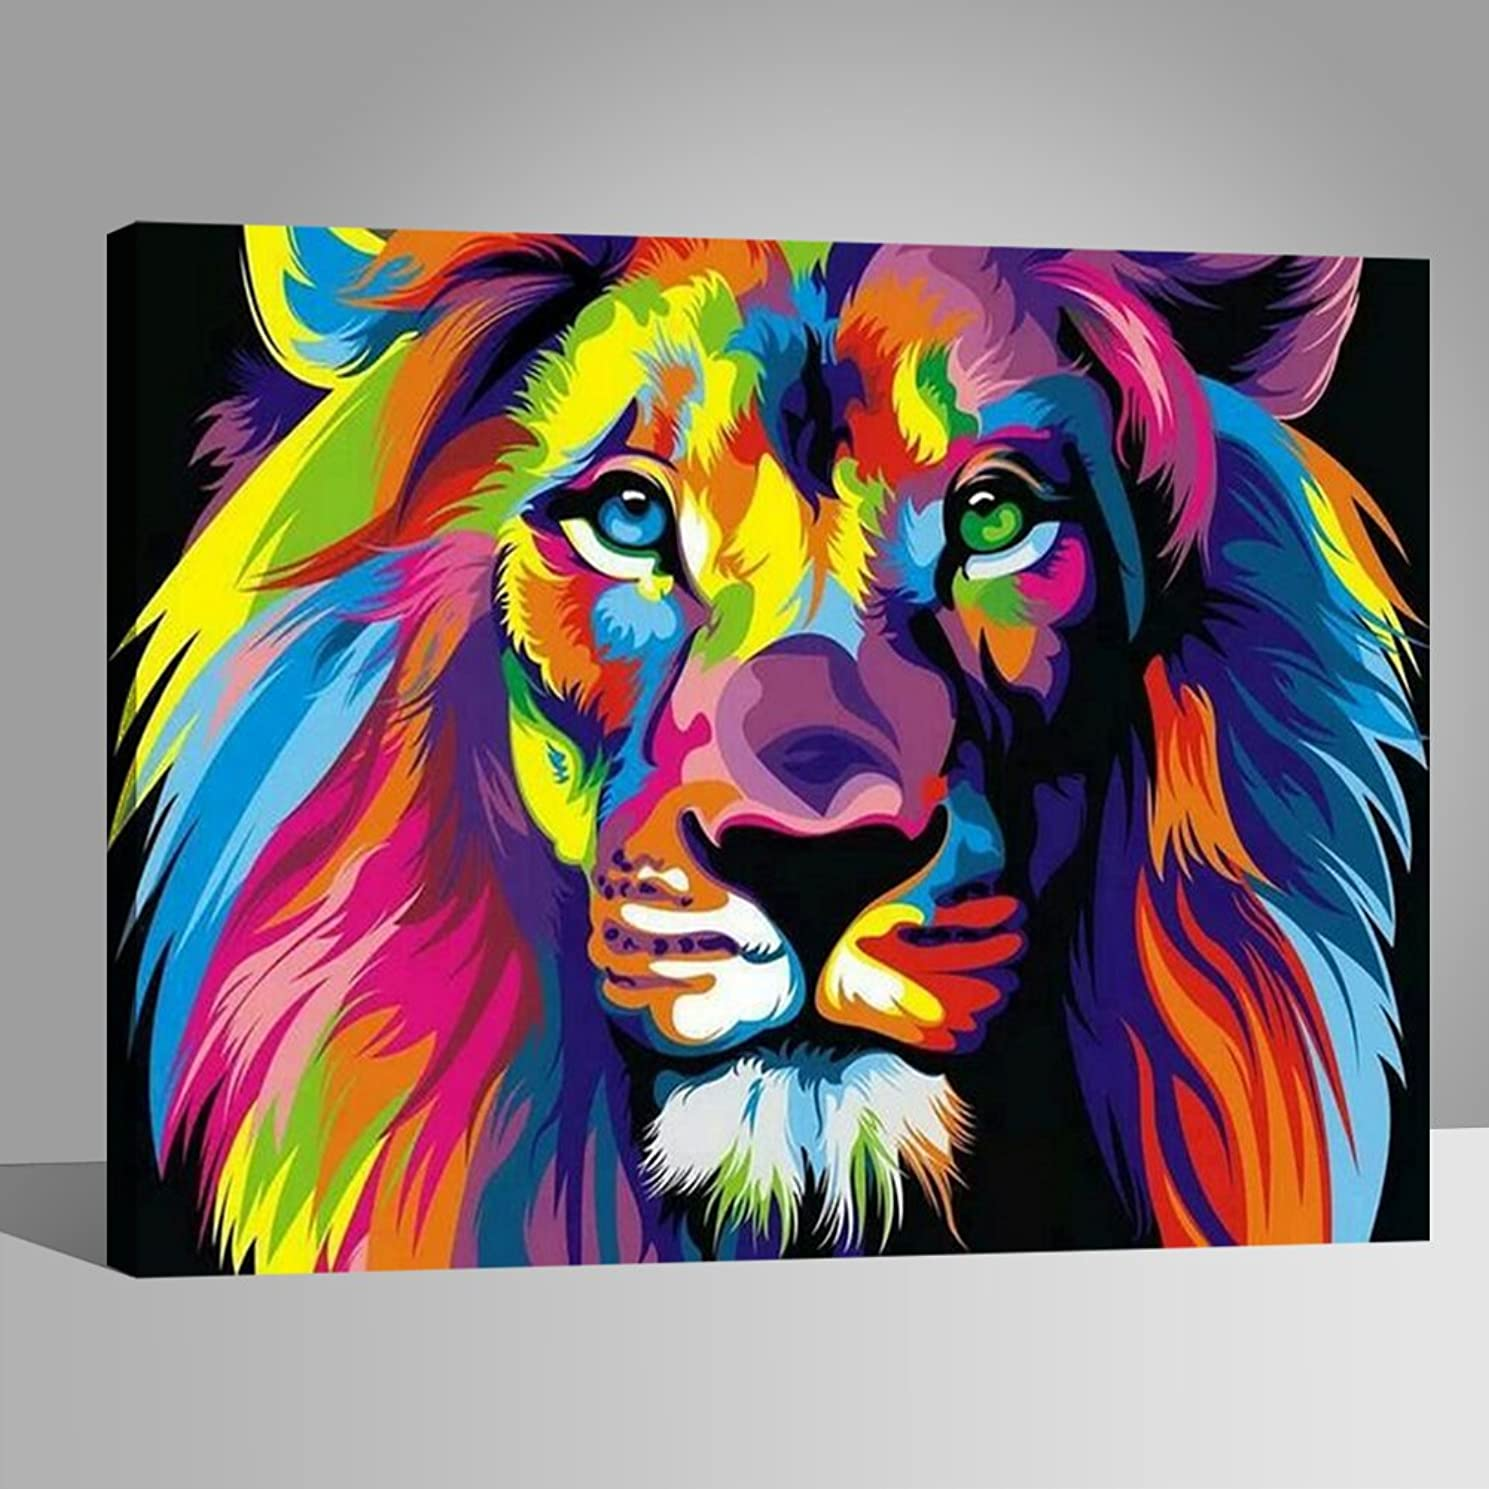 LIUDAO DIY Oil Painting Paint by Number for Kids and Adults Colorful Lion 16x20 Inches Wooden Frame